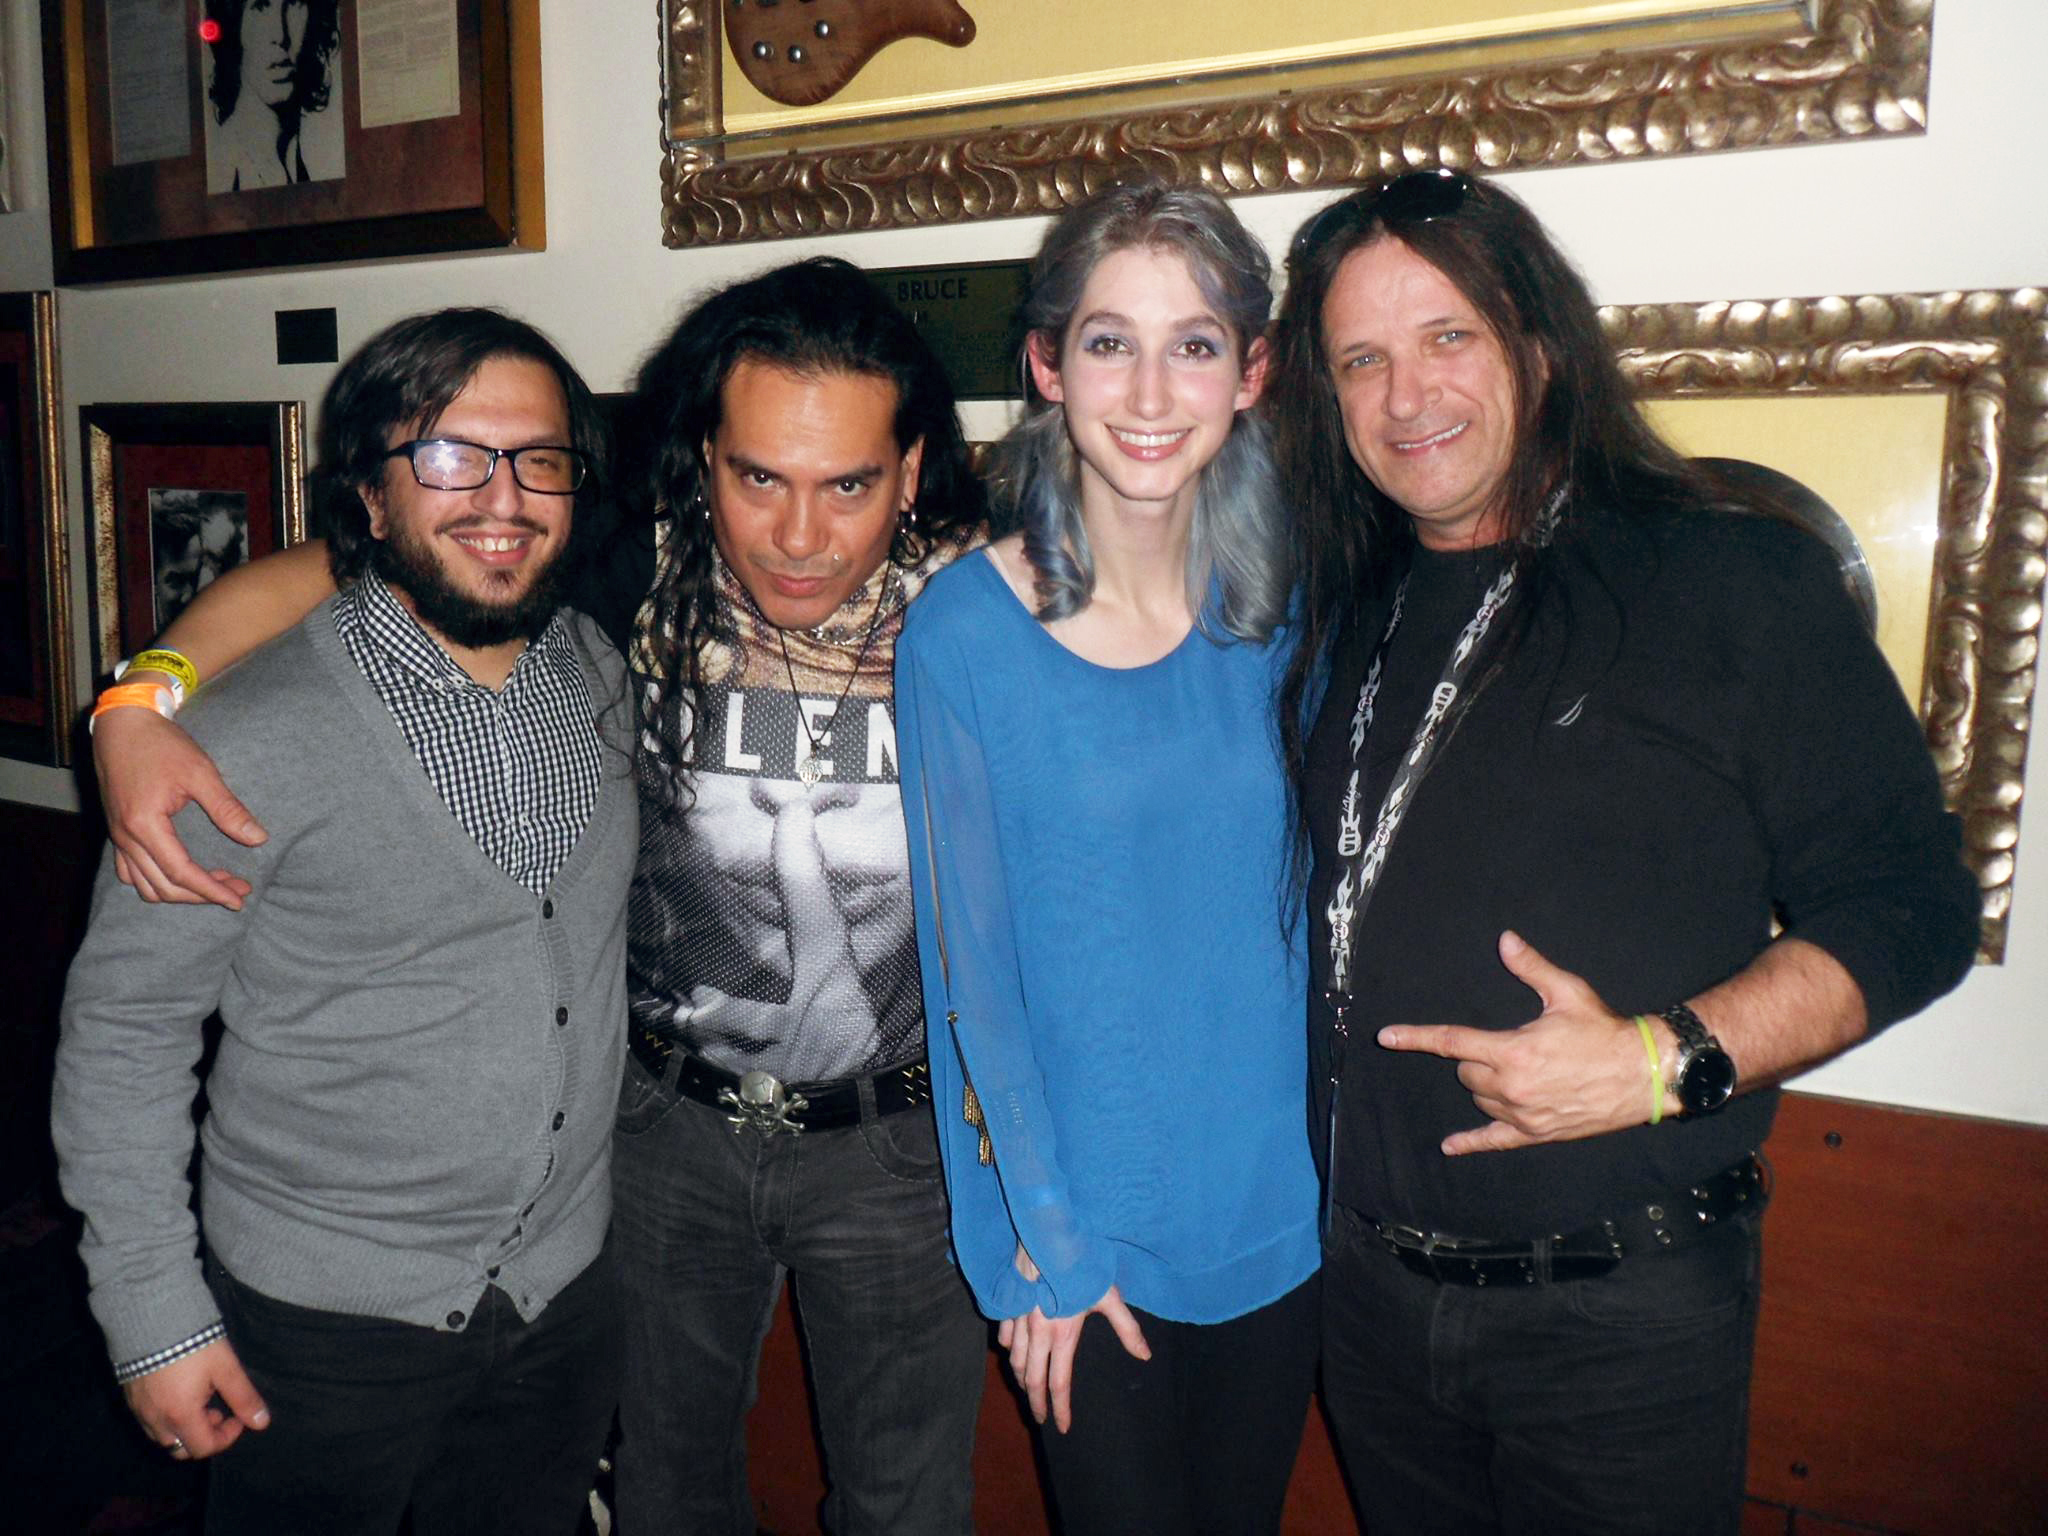 Musician Joe Musacchia, DJ Kuro and Geena Matuson with Gerg Anidem of Indie Scene Radio at Hard Rock Cafe in Boston, 2015.